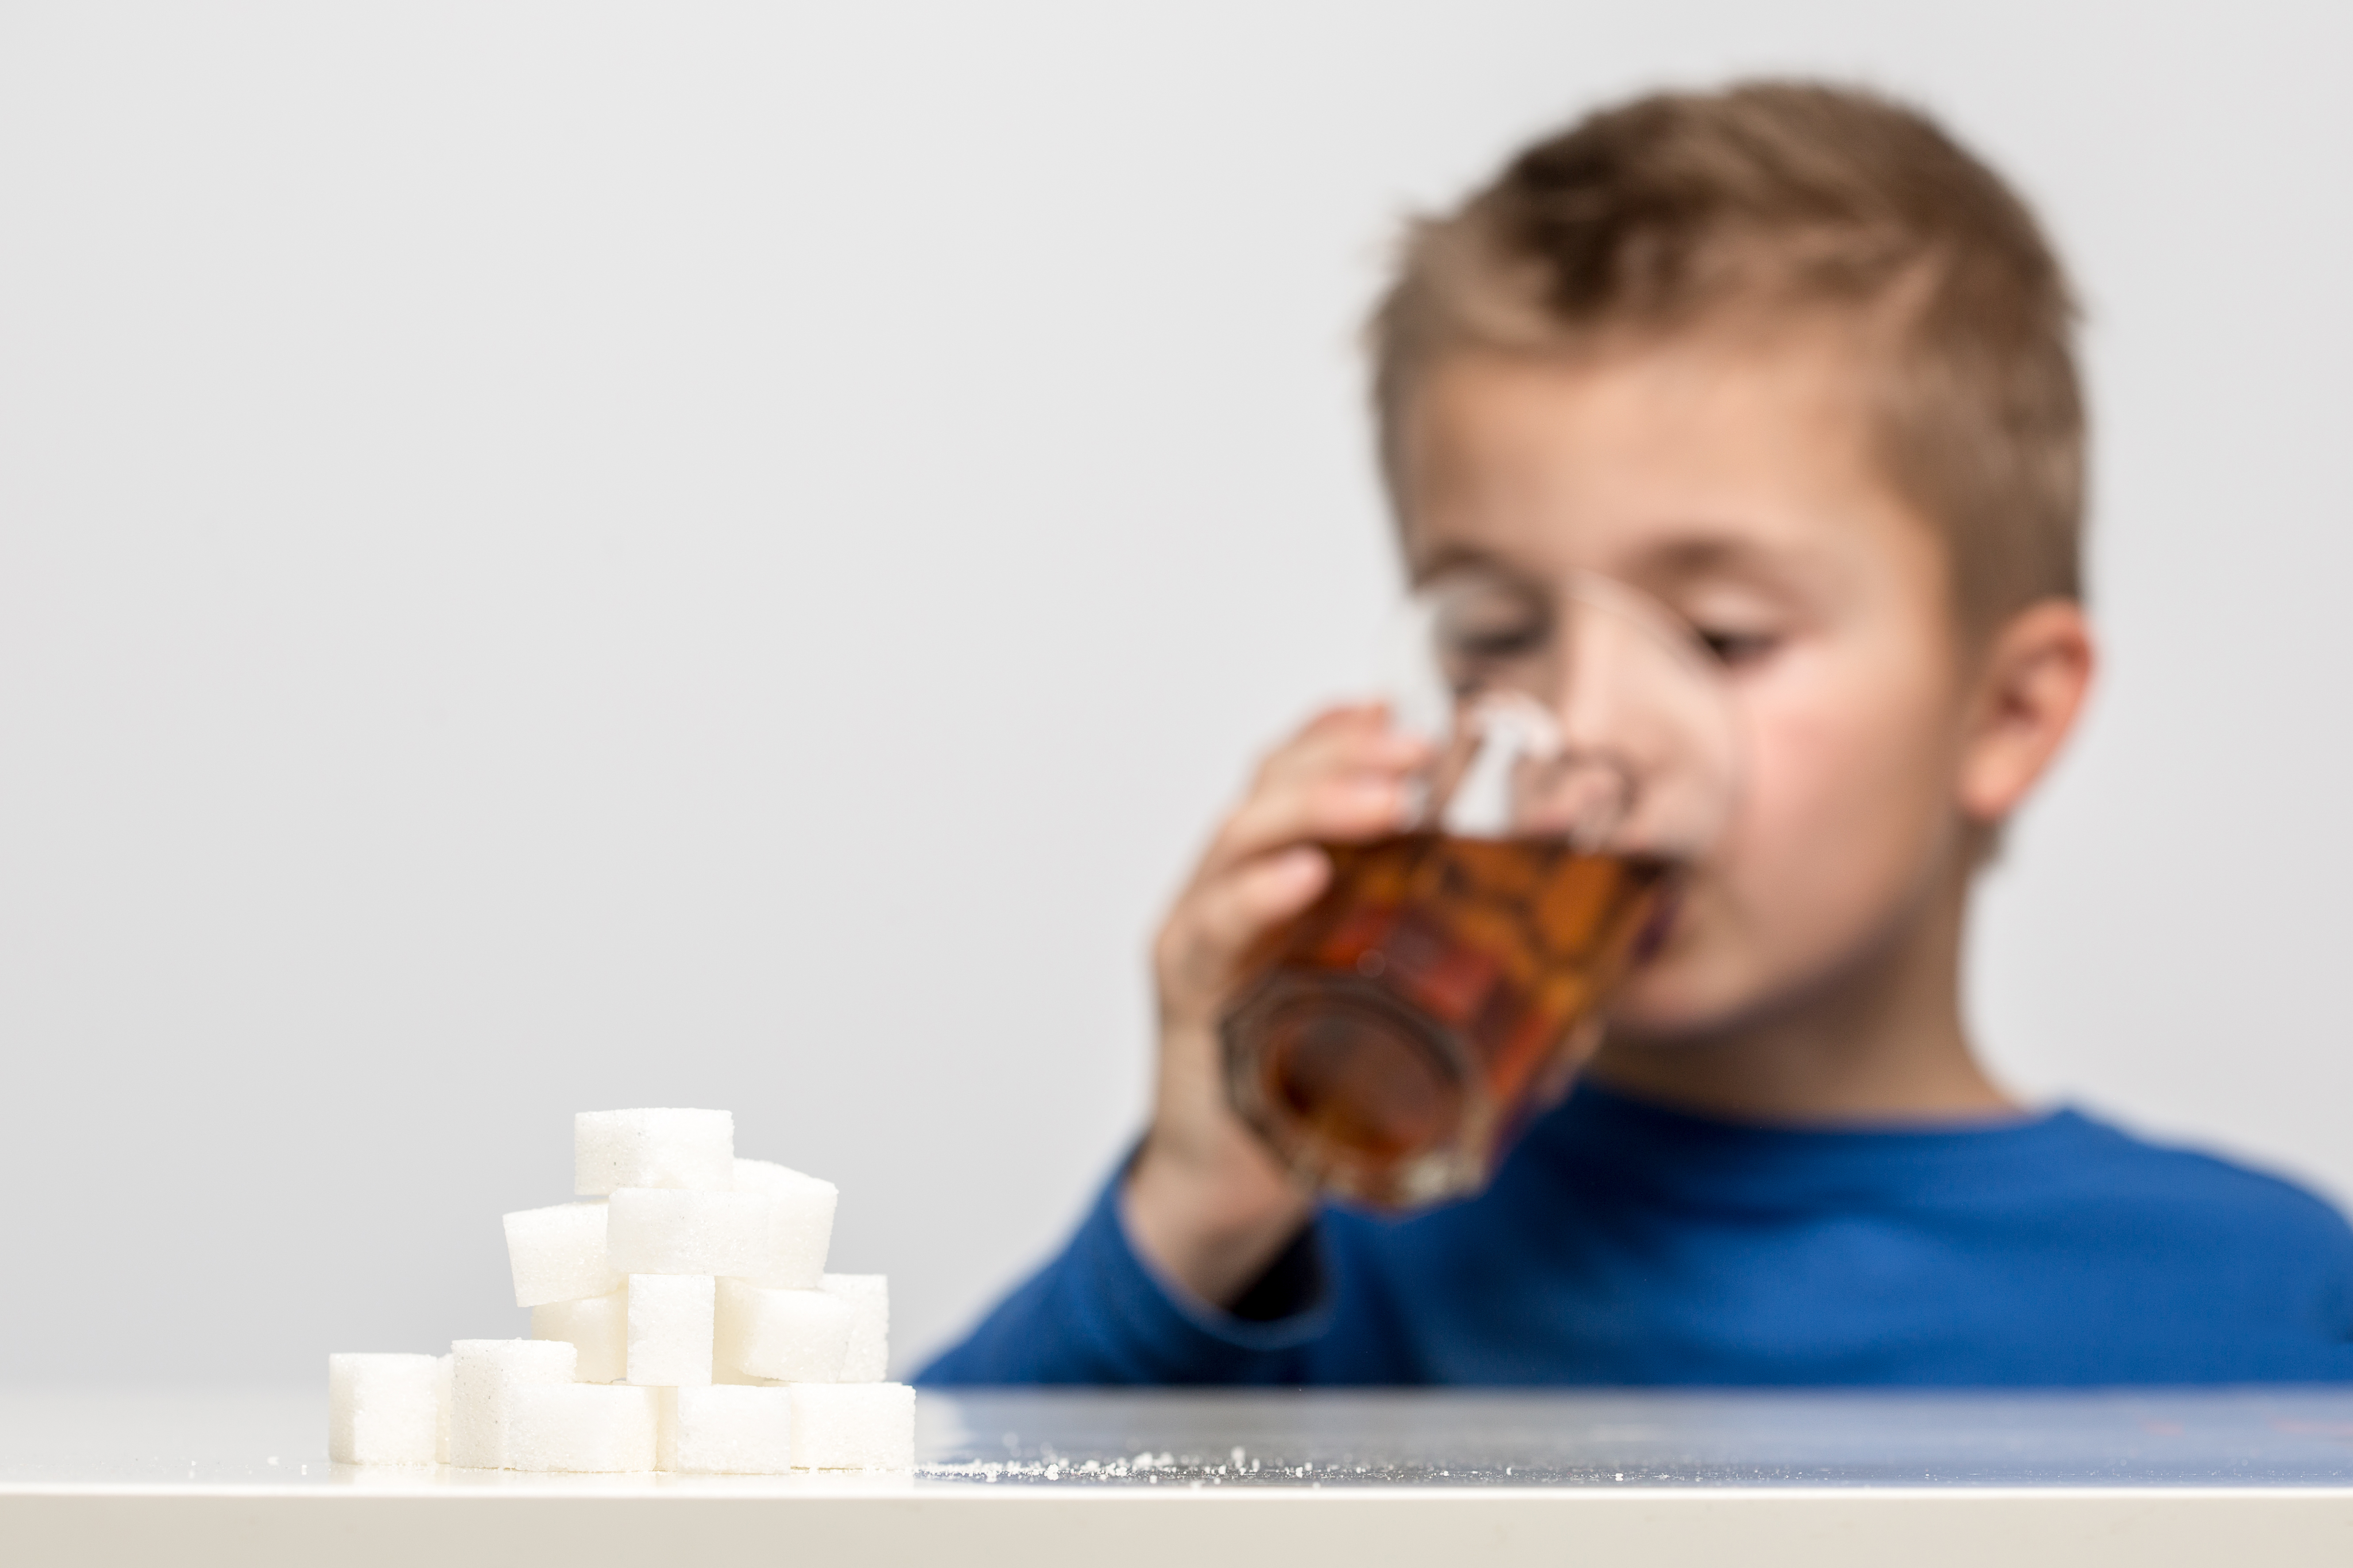 The Sugar Association covered up findings from a 1960s study that showed high-sugar intake could be carcinogenic.